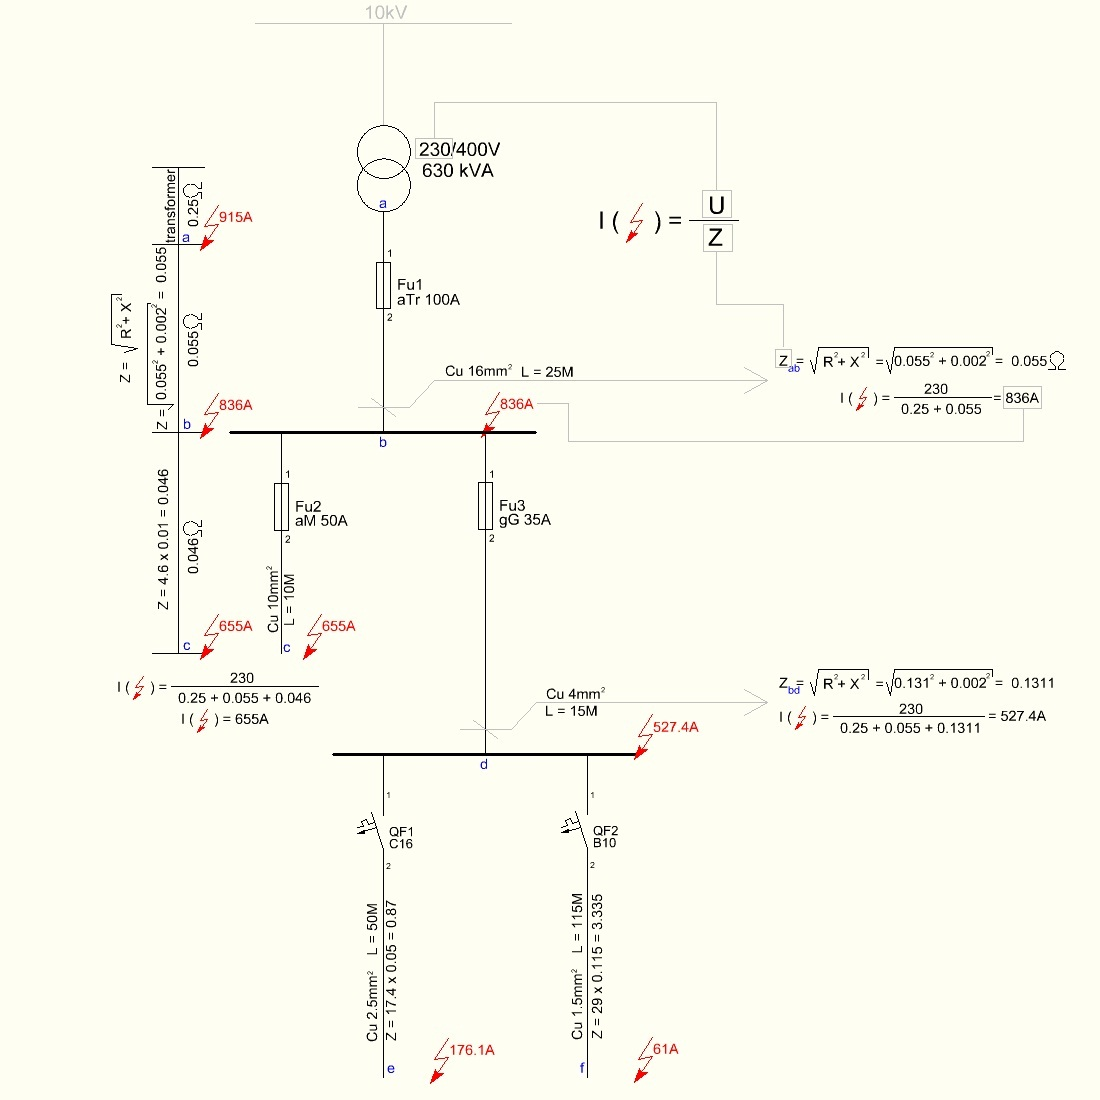 file explanation about short circuit (with example) for designing